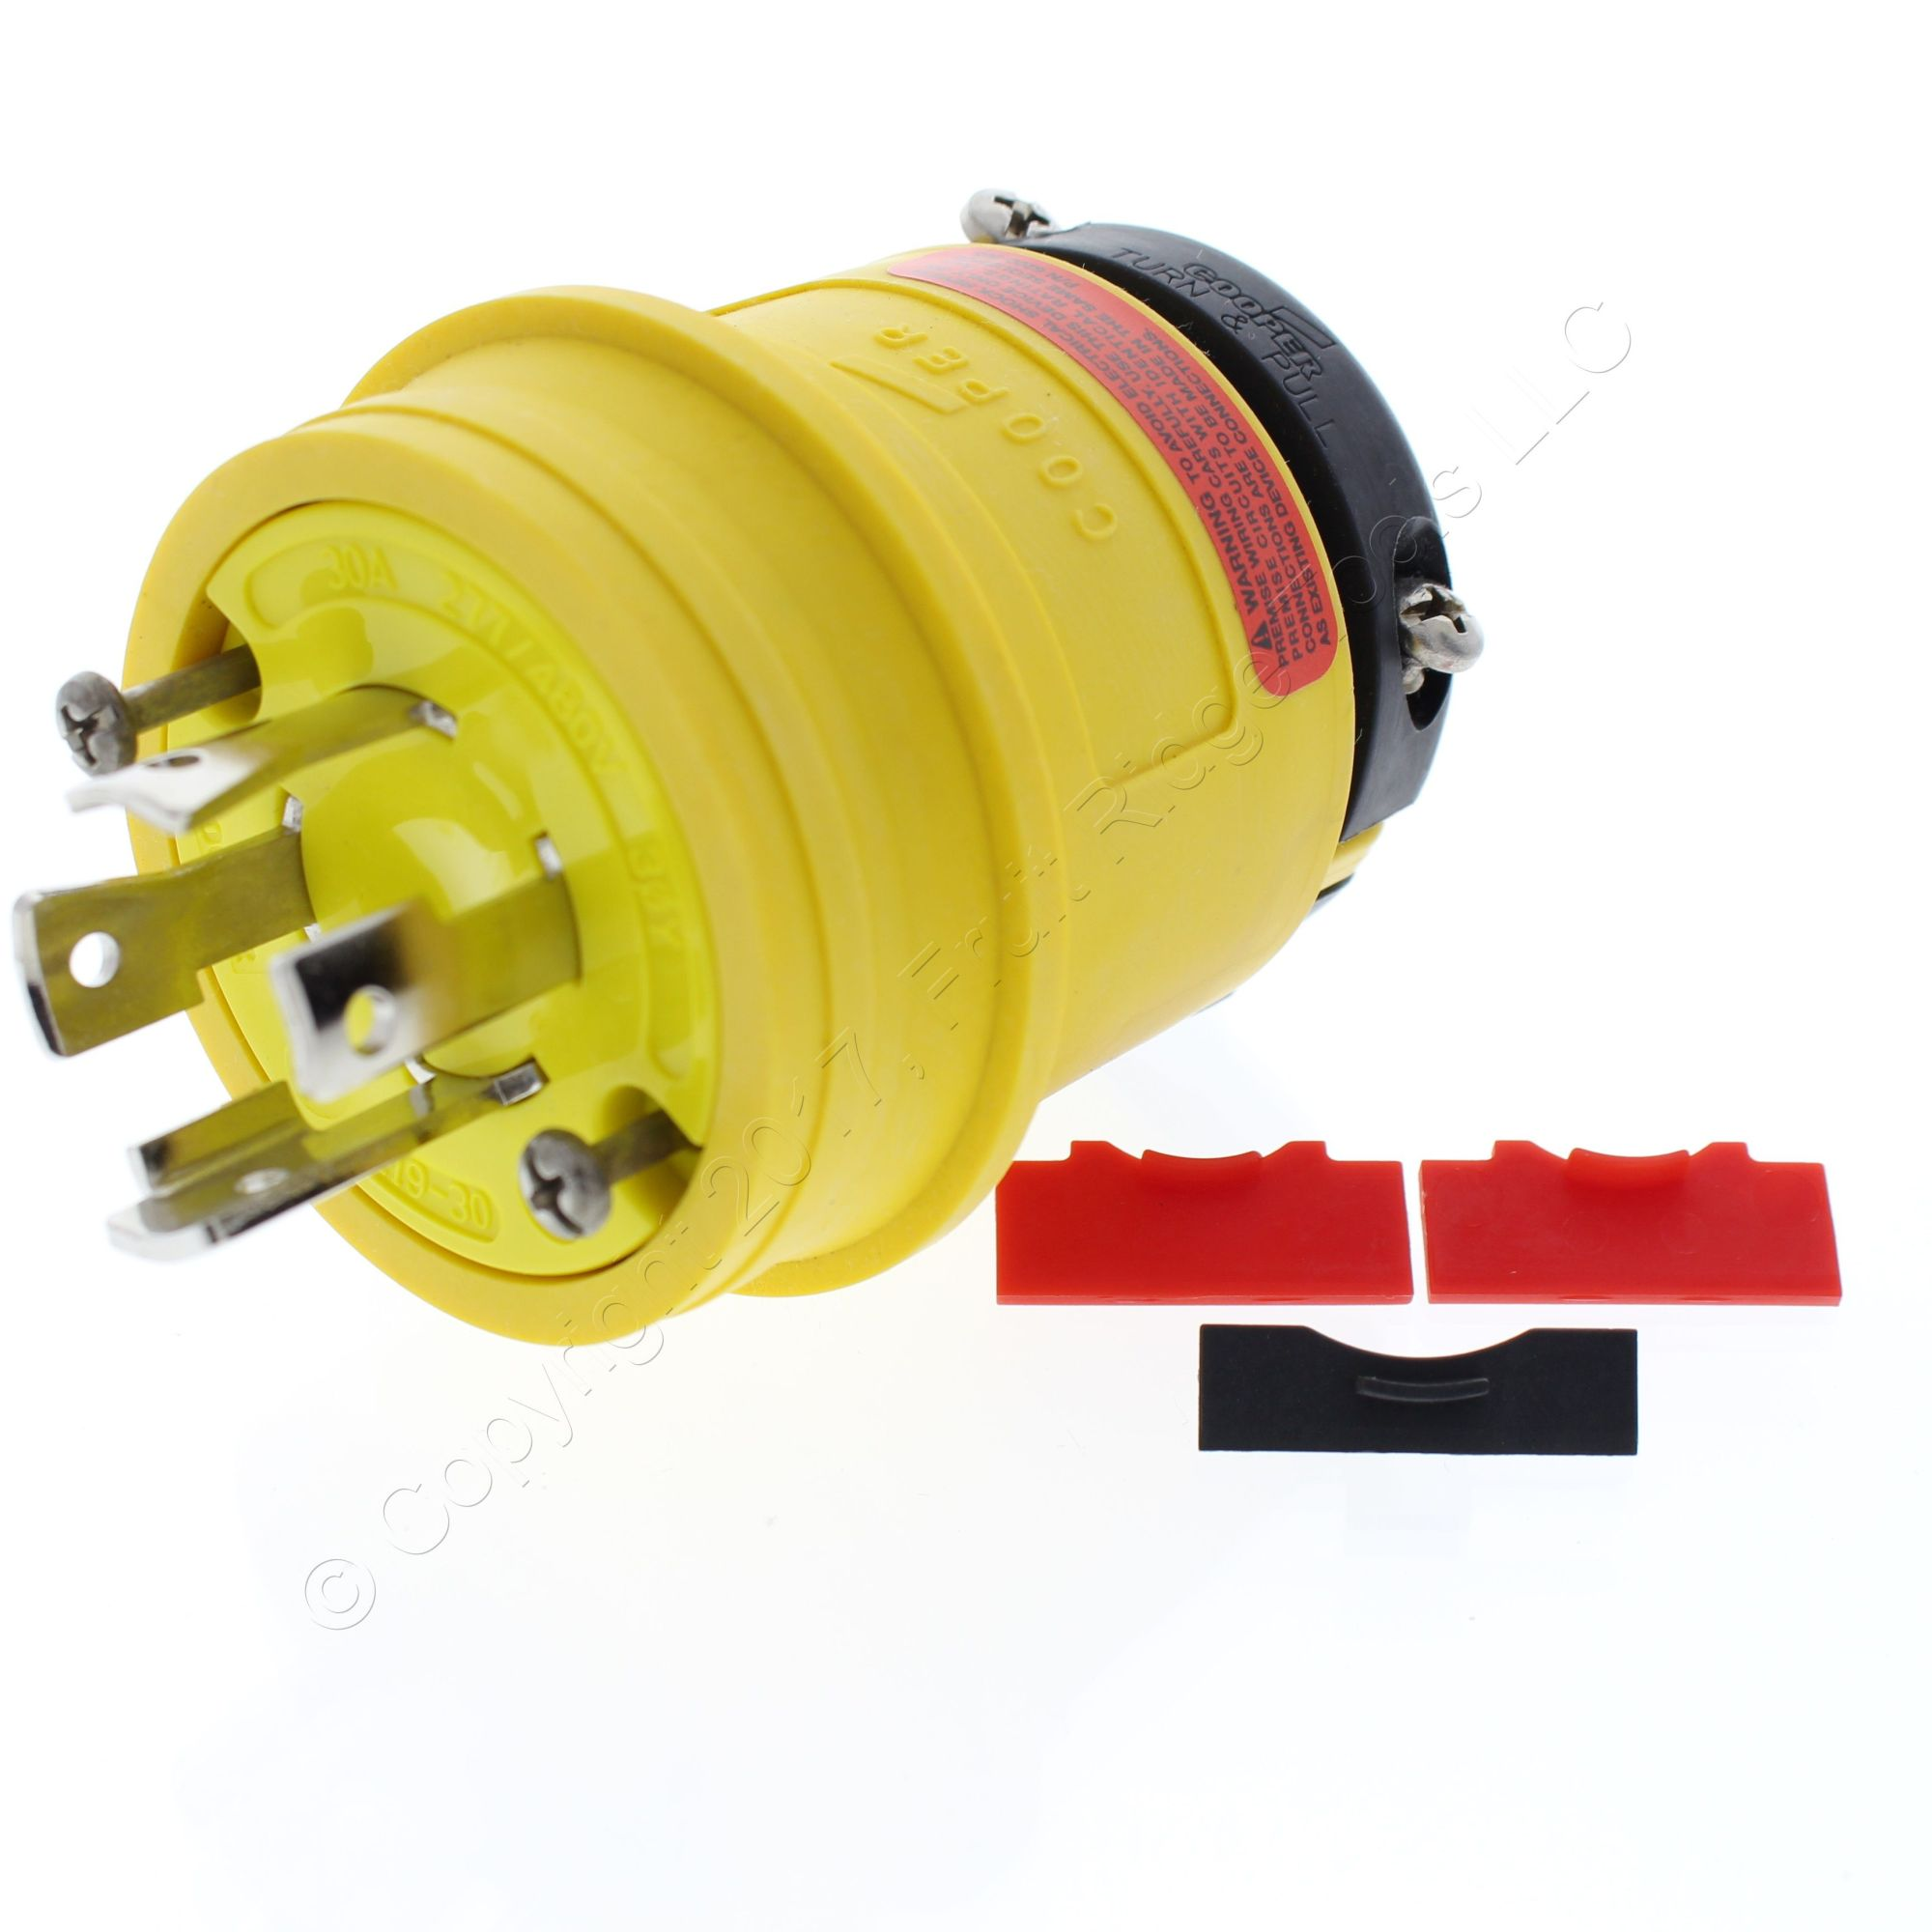 hight resolution of 480v hubbell plug 3 phase in addition 480v 3 phase transformer 480v hubbell plug 3 phase in addition 480v 3 phase transformer wiring